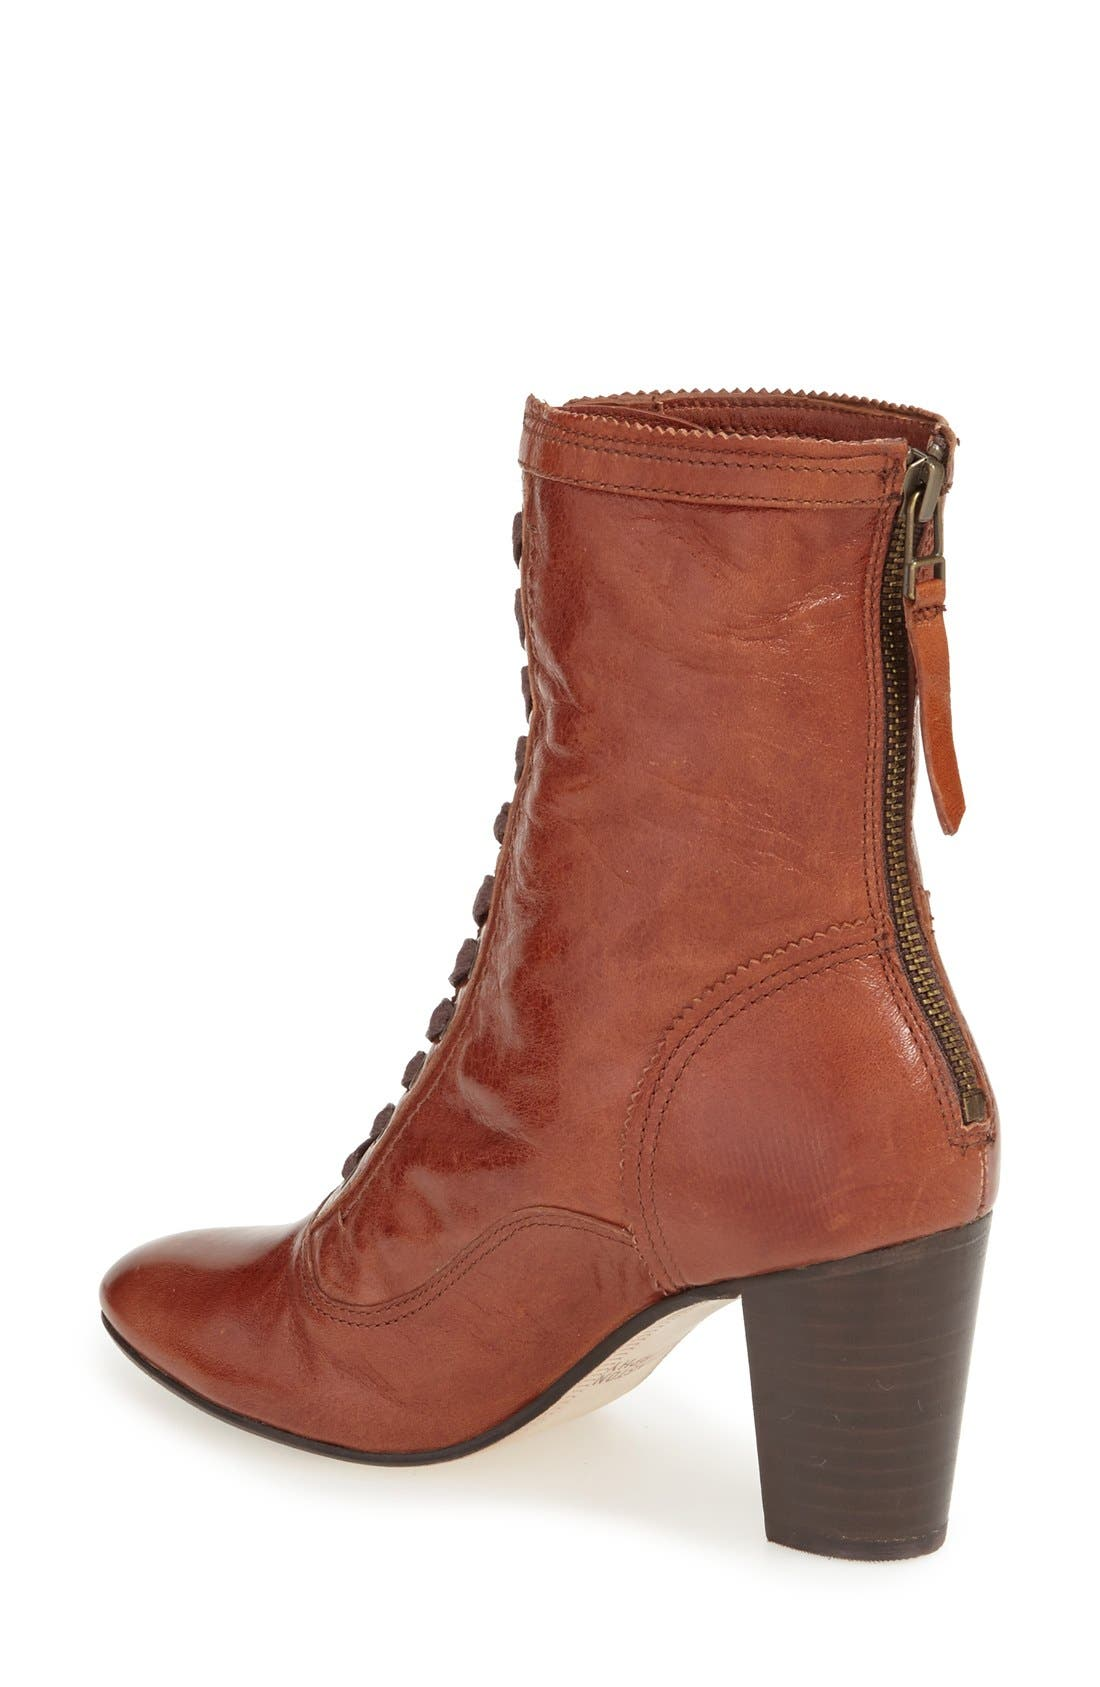 'Adaline' Lace-Up Boot,                             Alternate thumbnail 2, color,                             Whiskey Washed Leather